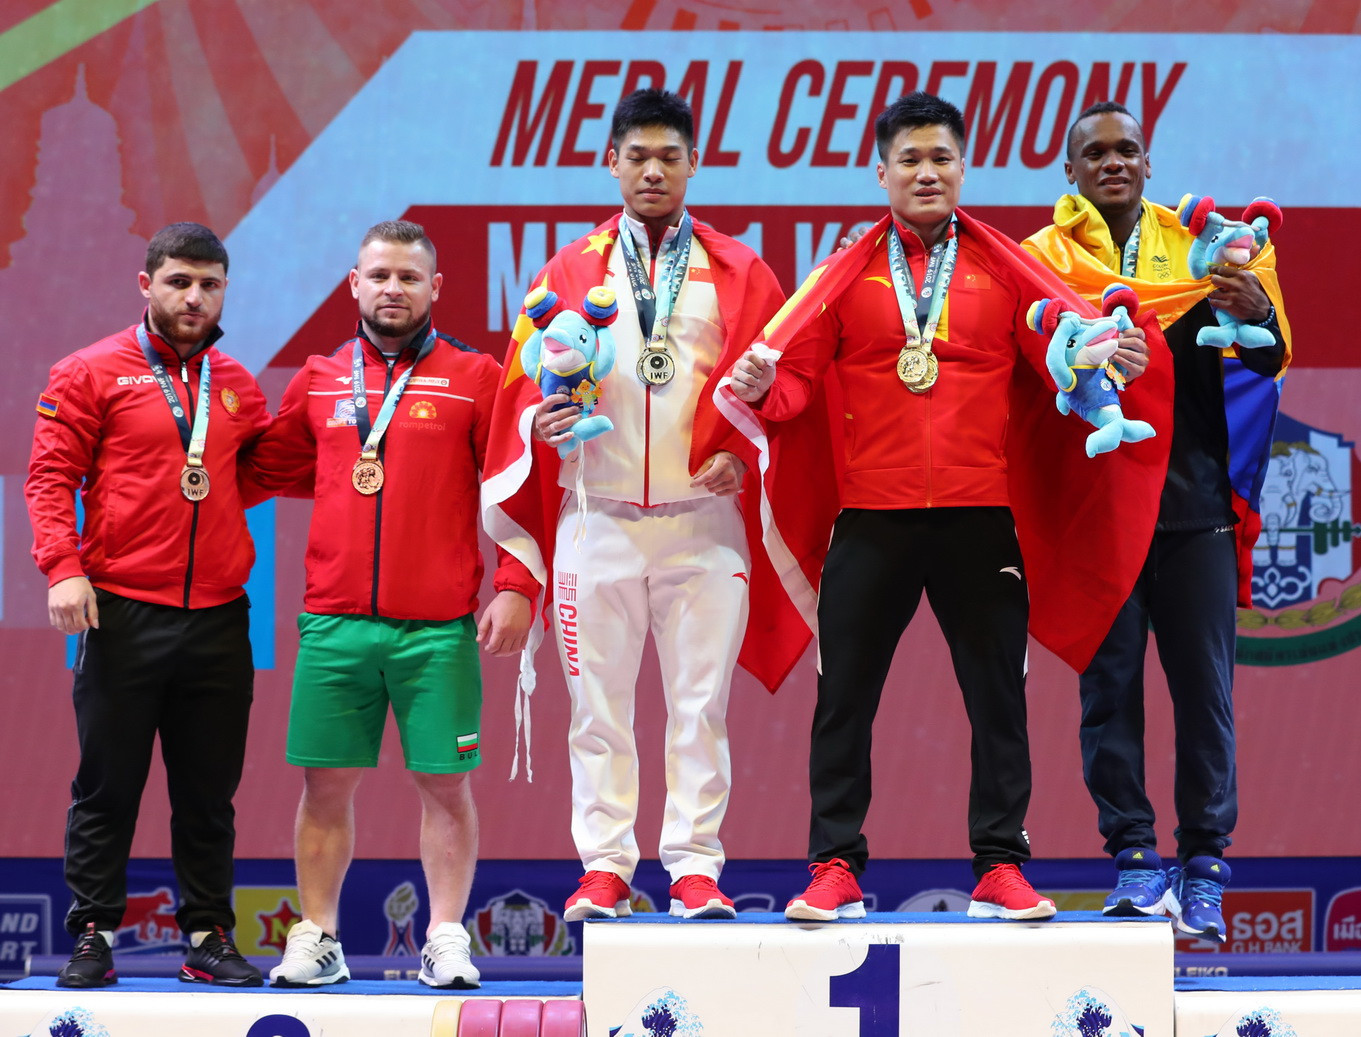 The trio were joined on the podium by Armenia's Andranik Karapetyan and Bulgaria's Yunder Nedim Beytula, the bronze medallists in the snatch and clean and jerk, respectively ©IWF